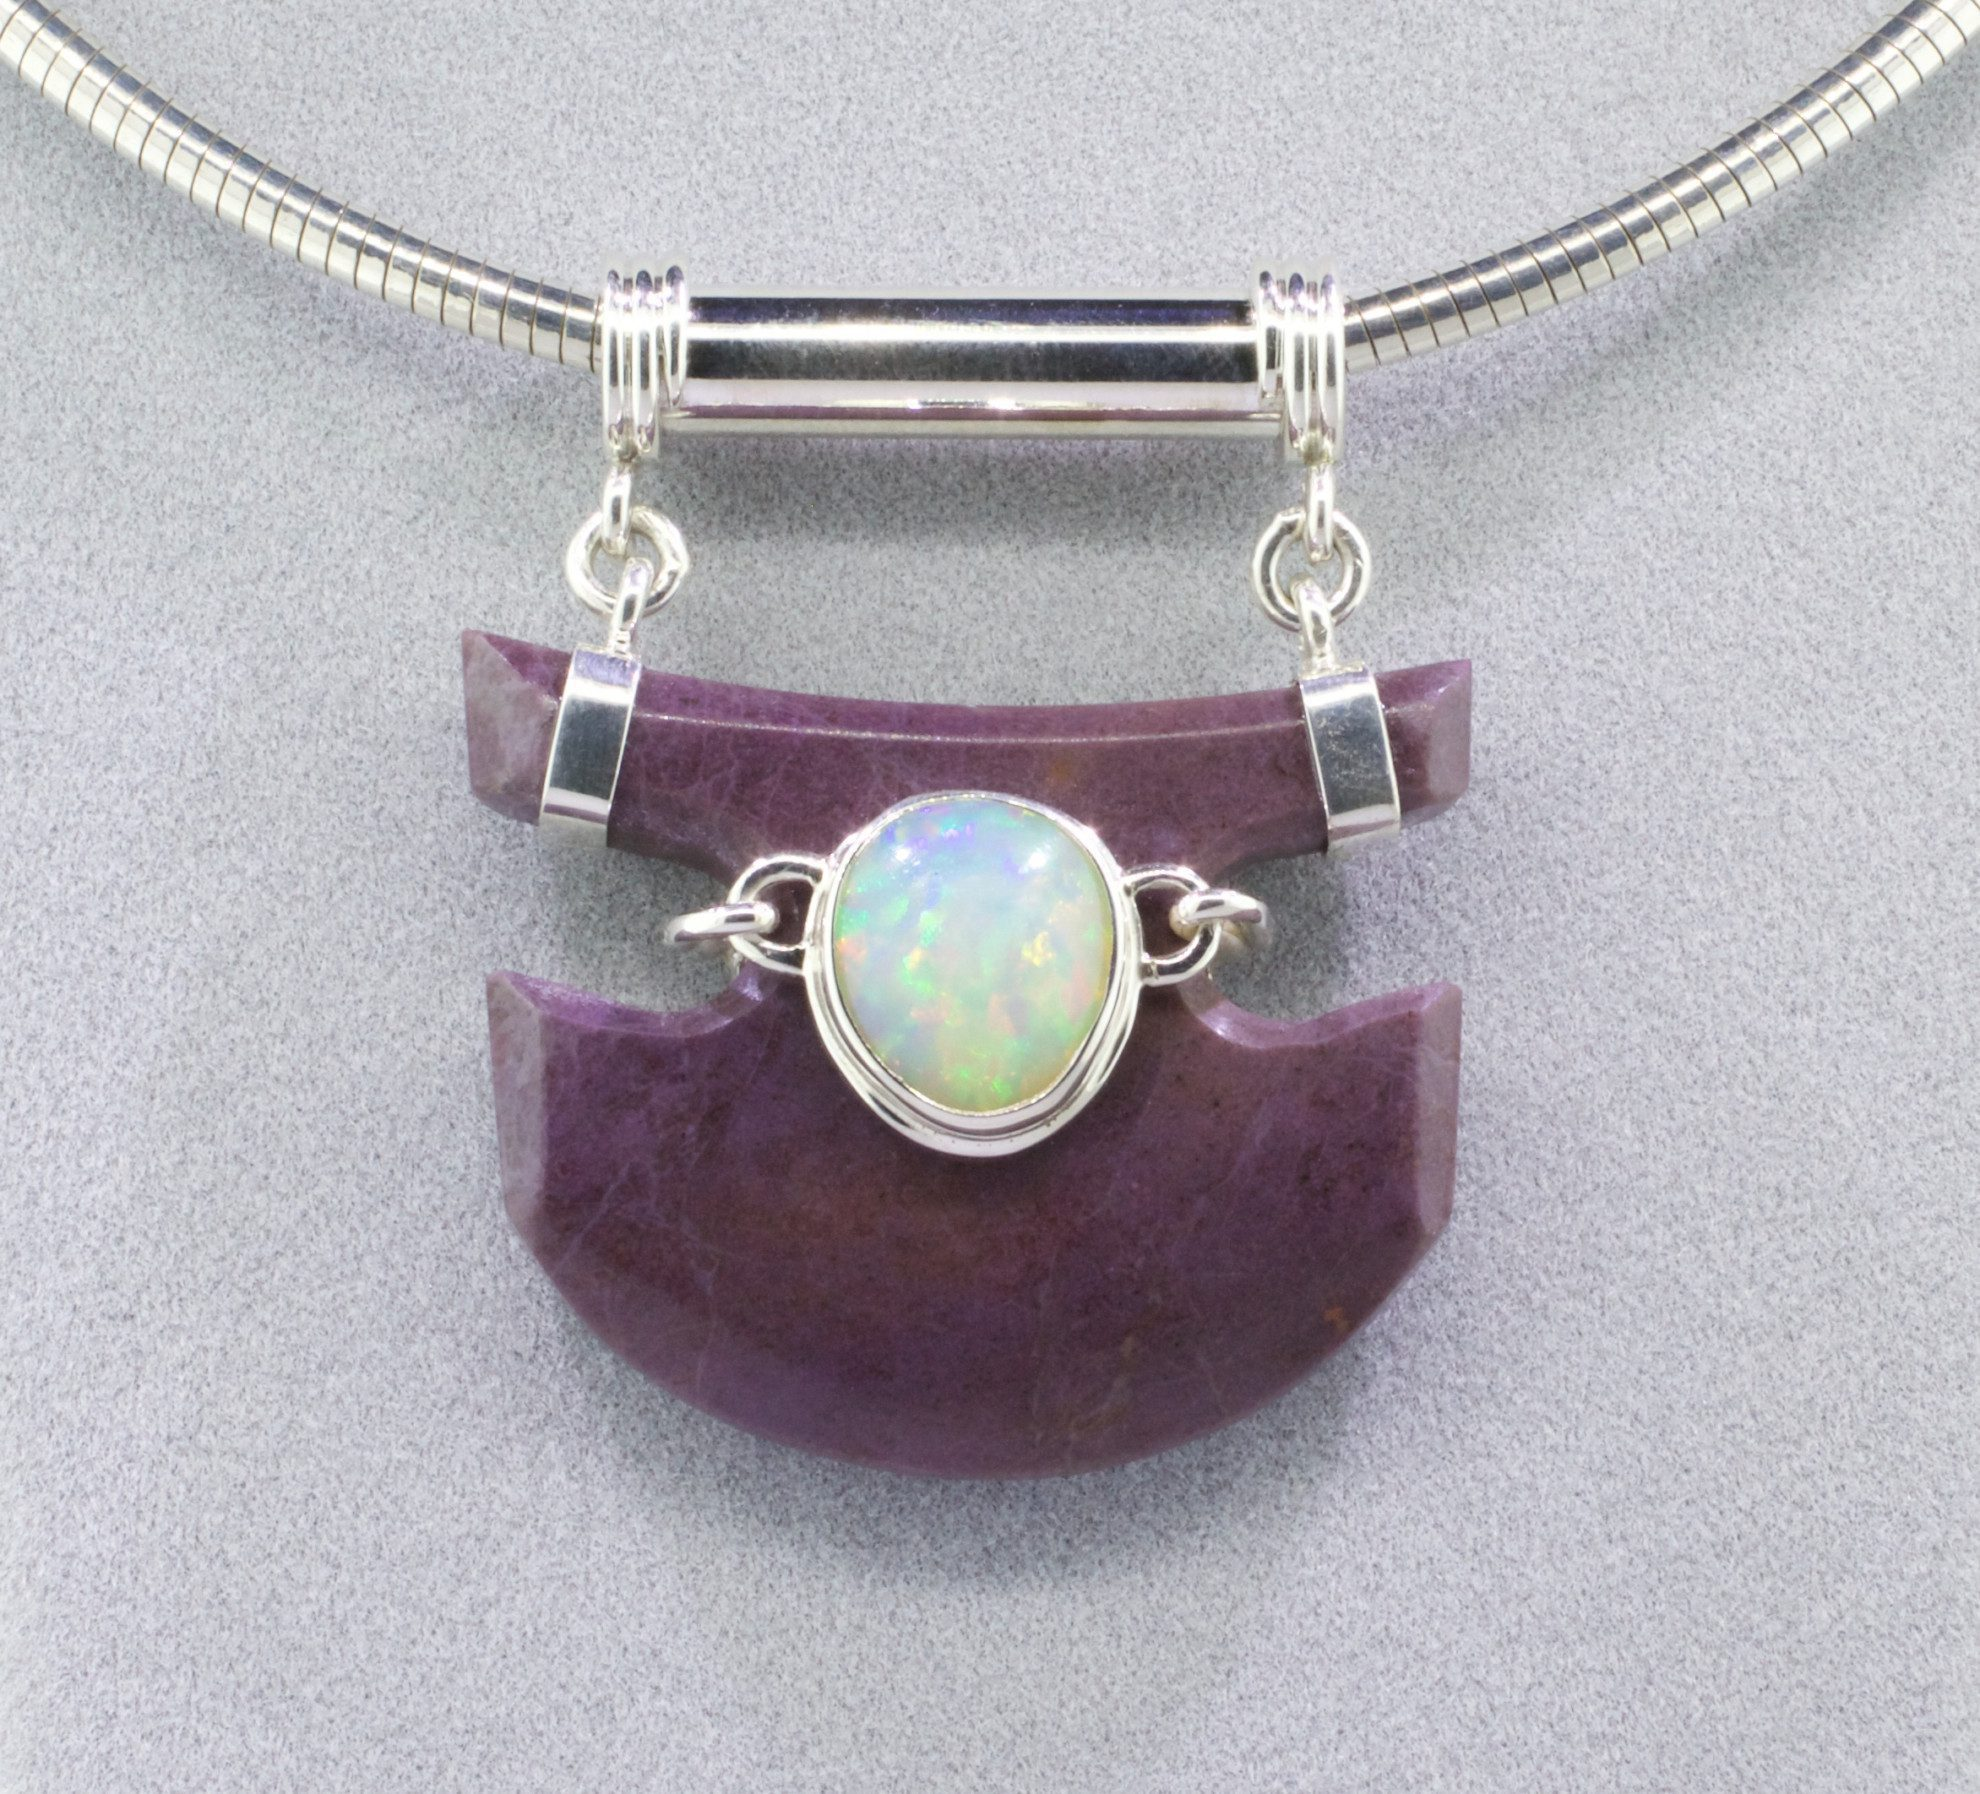 Resultado de imagen para turkish purple jade jewelry